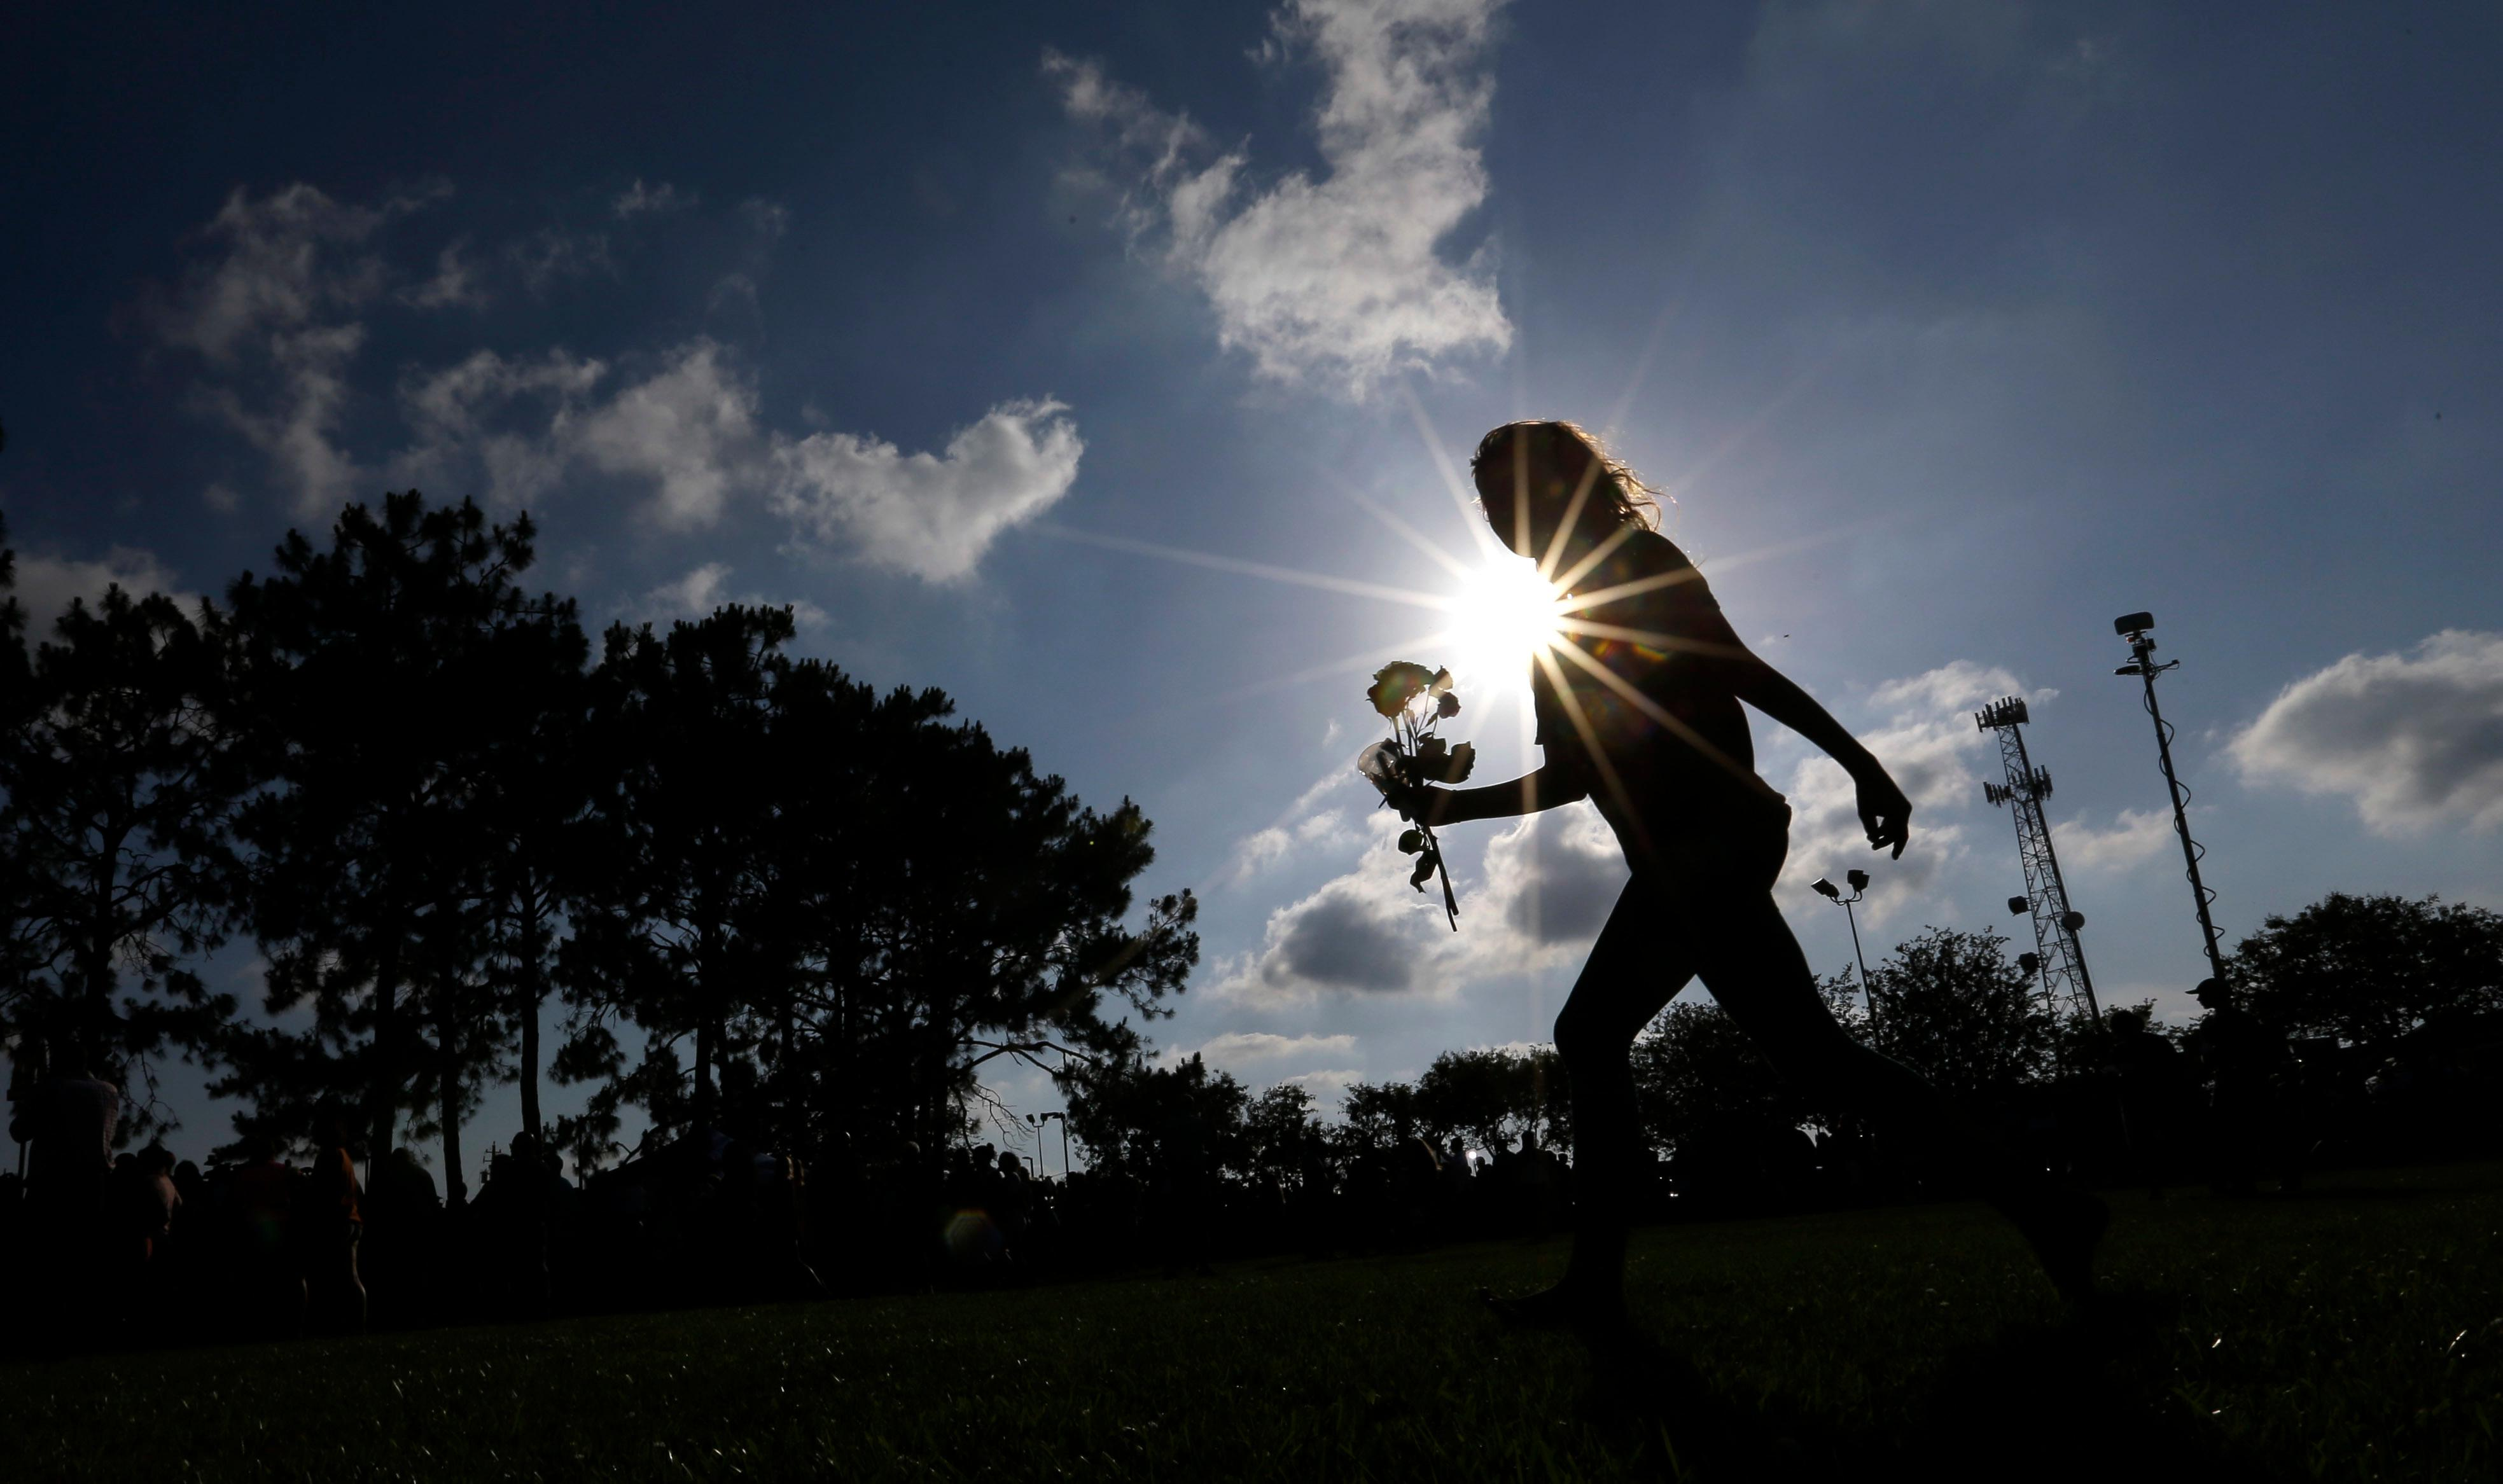 Hannah Harrison carries roses during a prayer vigil following a deadly shooting at Santa Fe High School in Santa Fe, Texas, on Friday, May 18, 2018. (AP Photo/David J. Phillip)